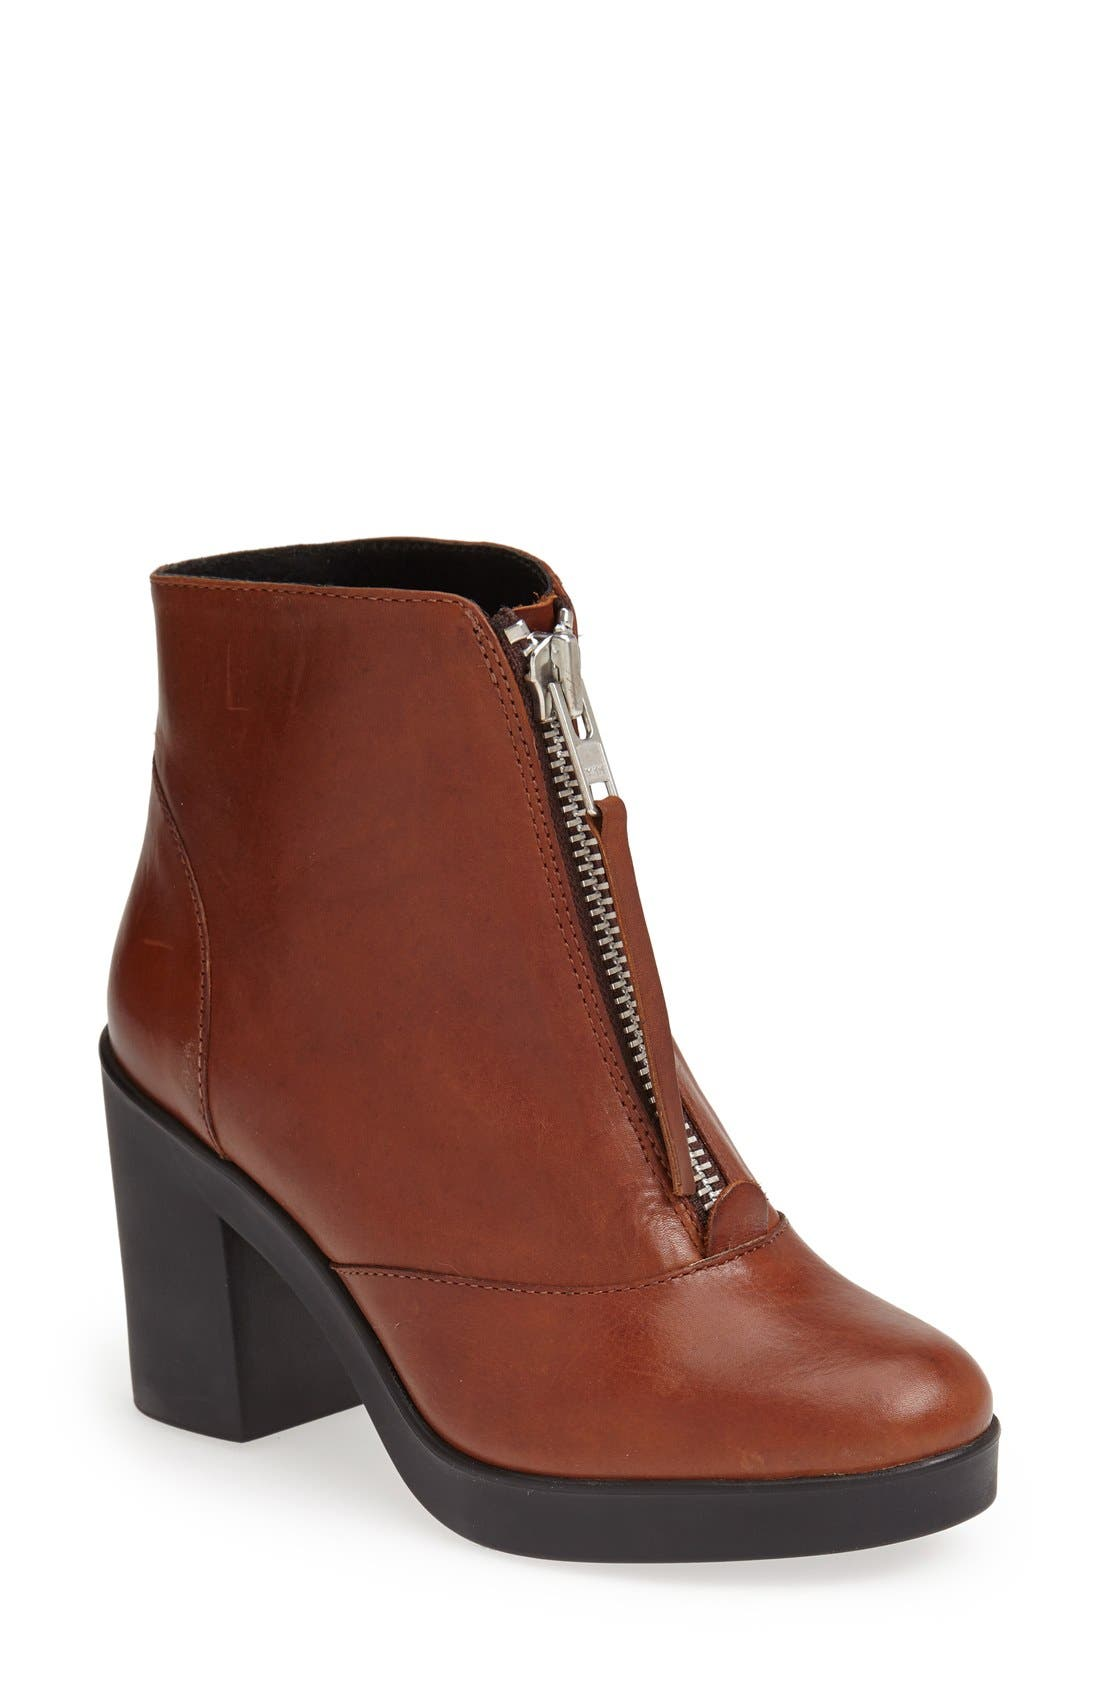 Alternate Image 1 Selected - Topshop 'Magic' Ankle Boot (Women)